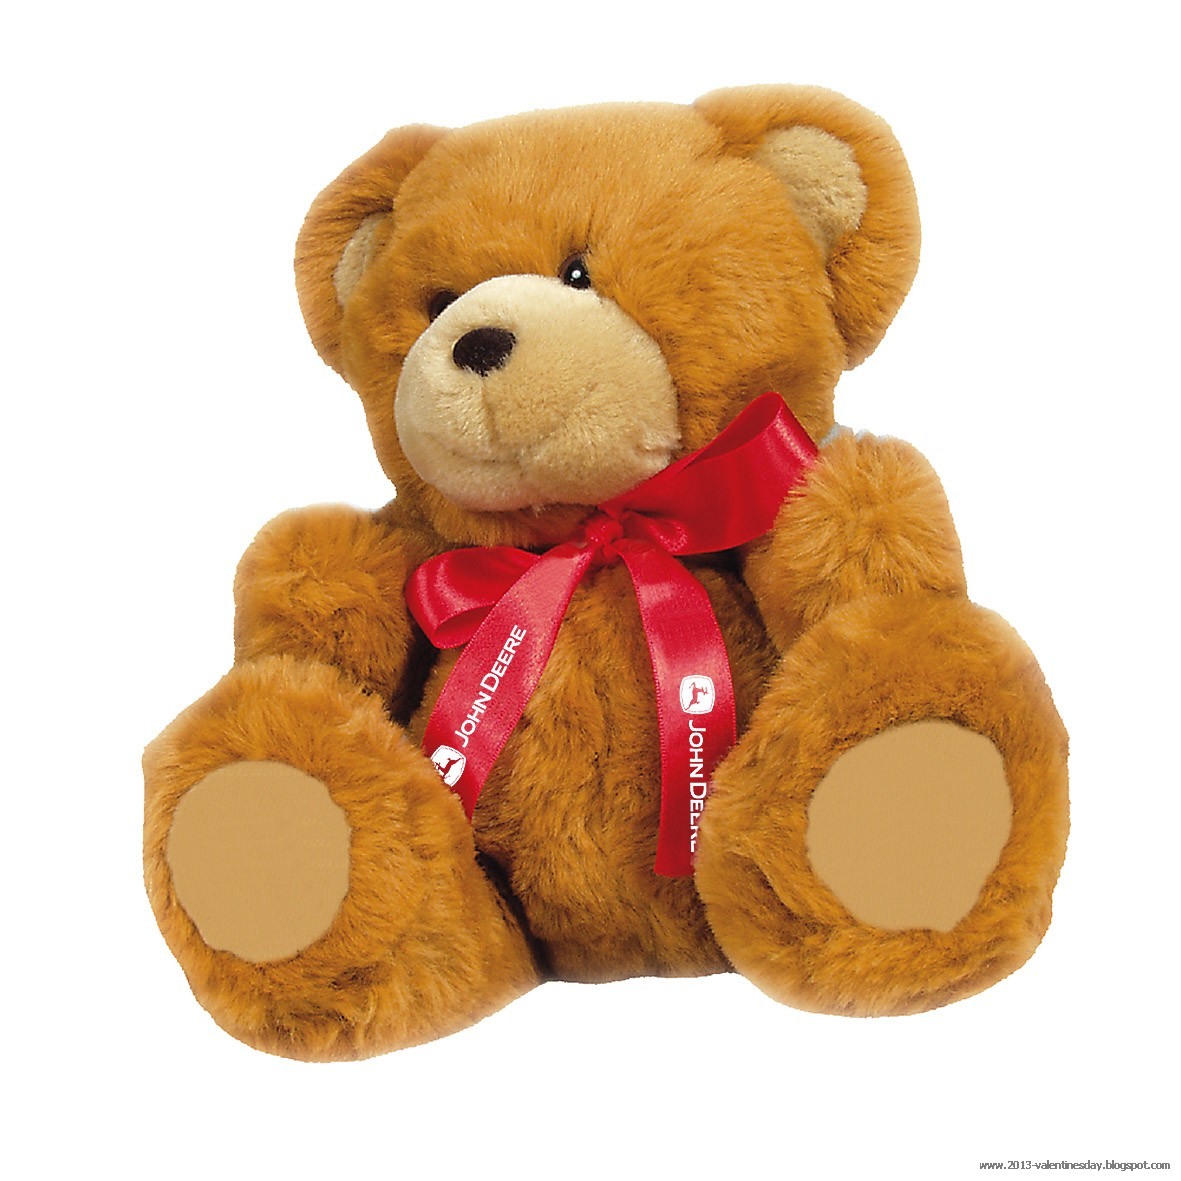 Cute Baby With Teddy Bear Wallpapers Valentines Day Teddy Bear Gift Ideas N Hd Wallpapers